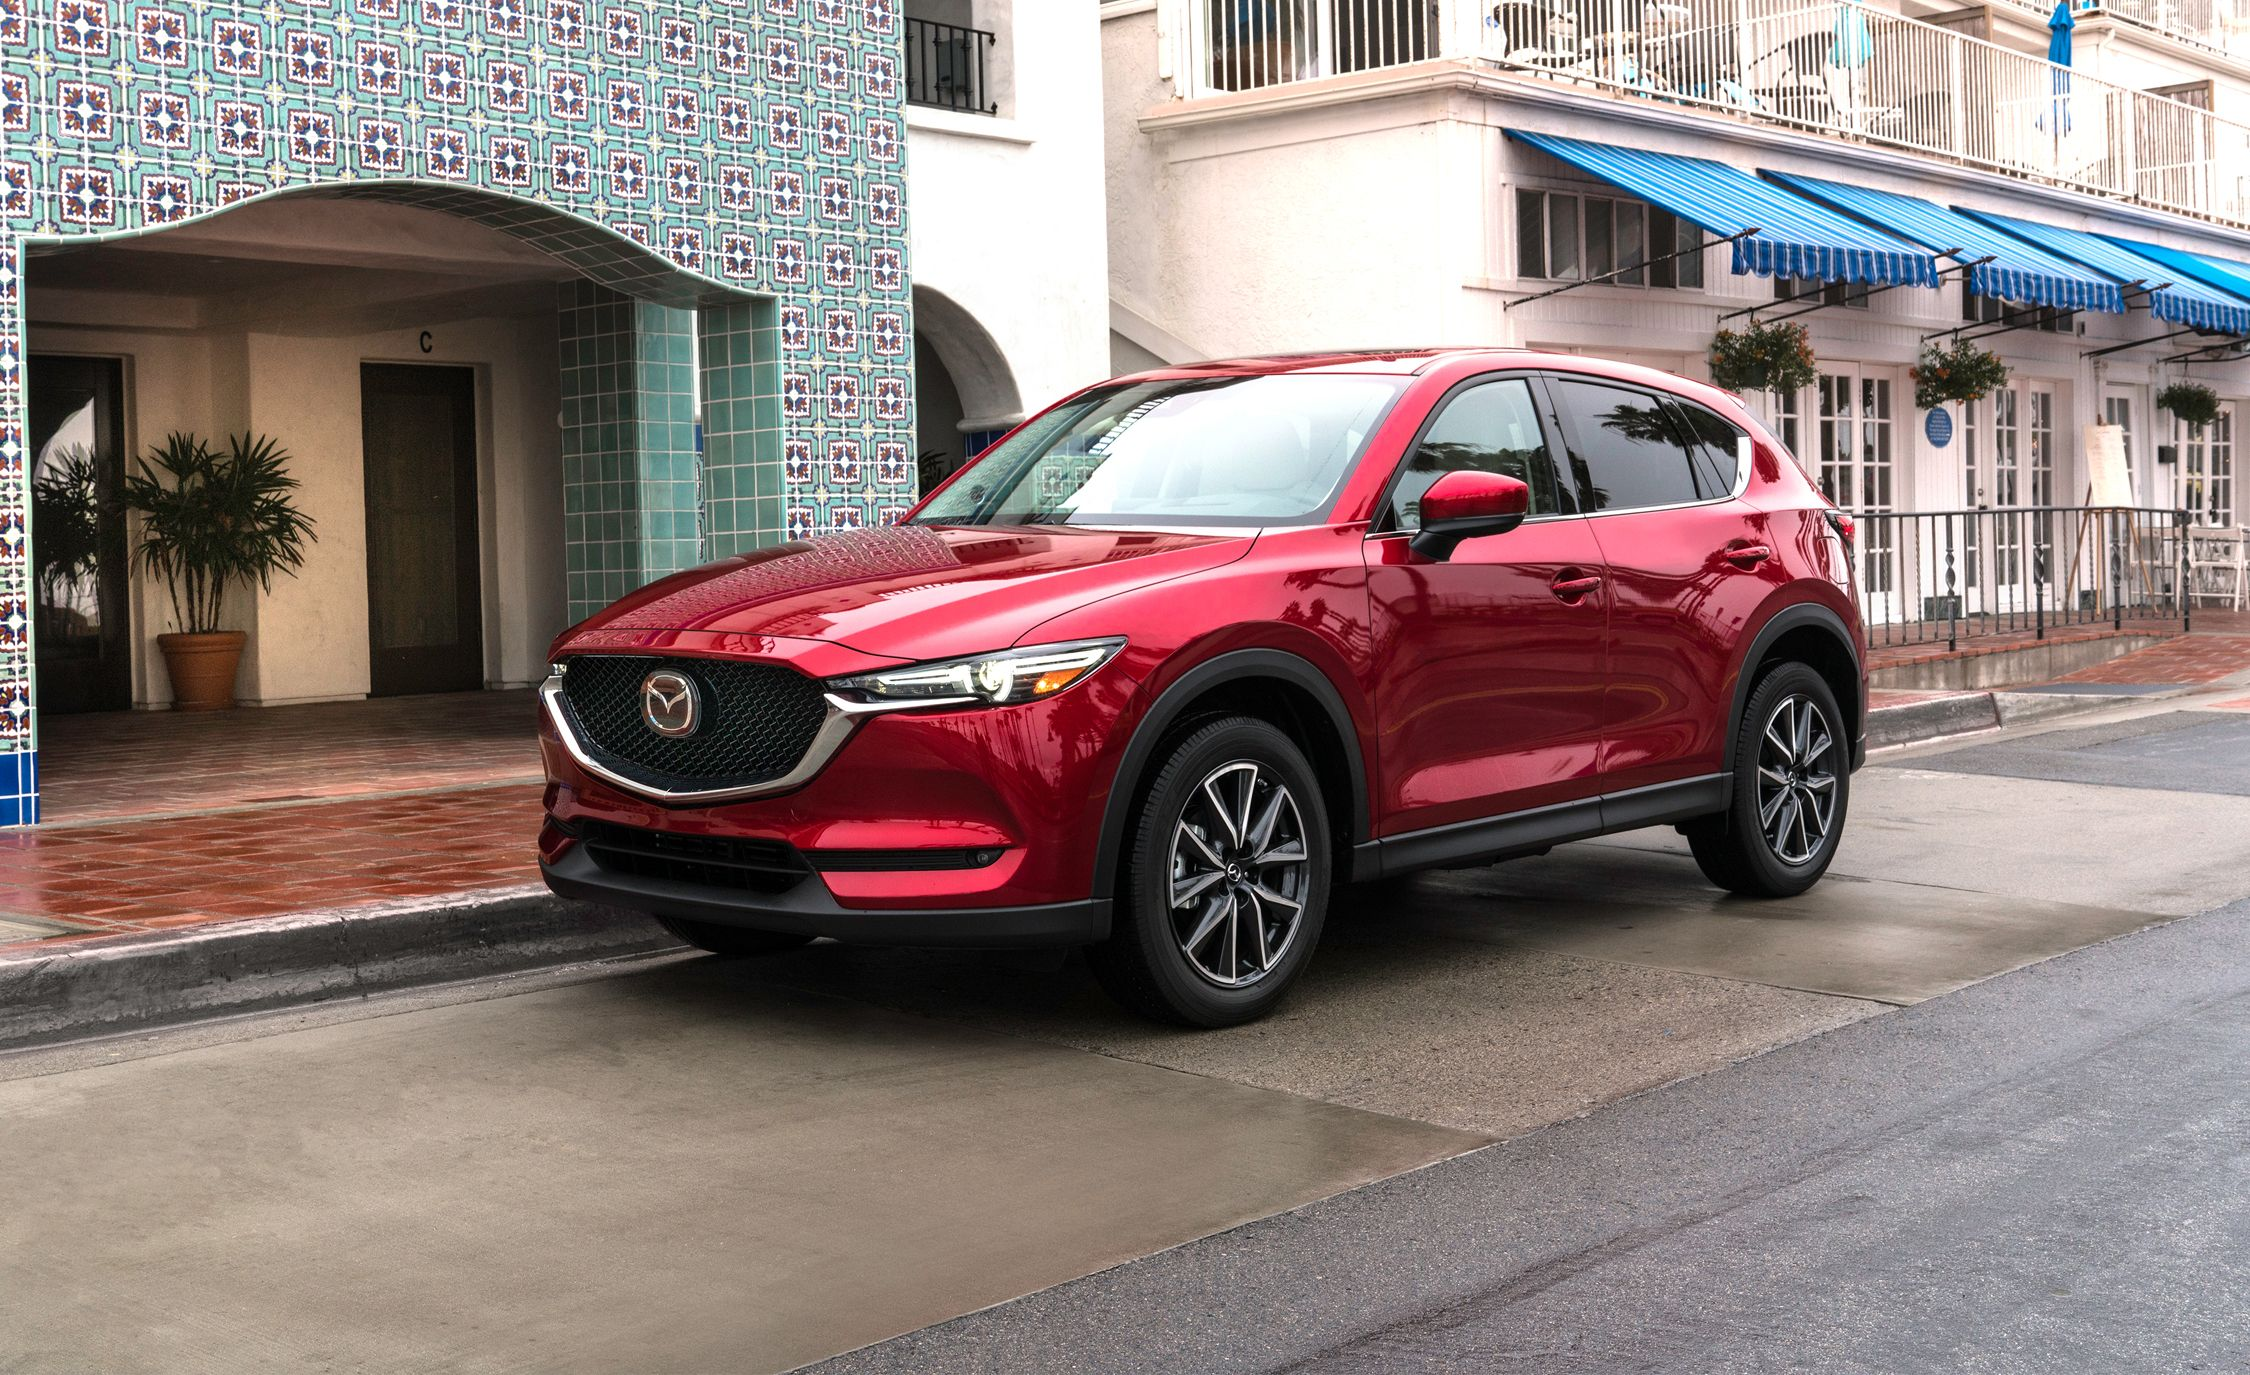 2017 mazda cx 5 first drive review car and driver photo 676570 s original 2017 mazda cx 5 first drive review car and driver  at bayanpartner.co